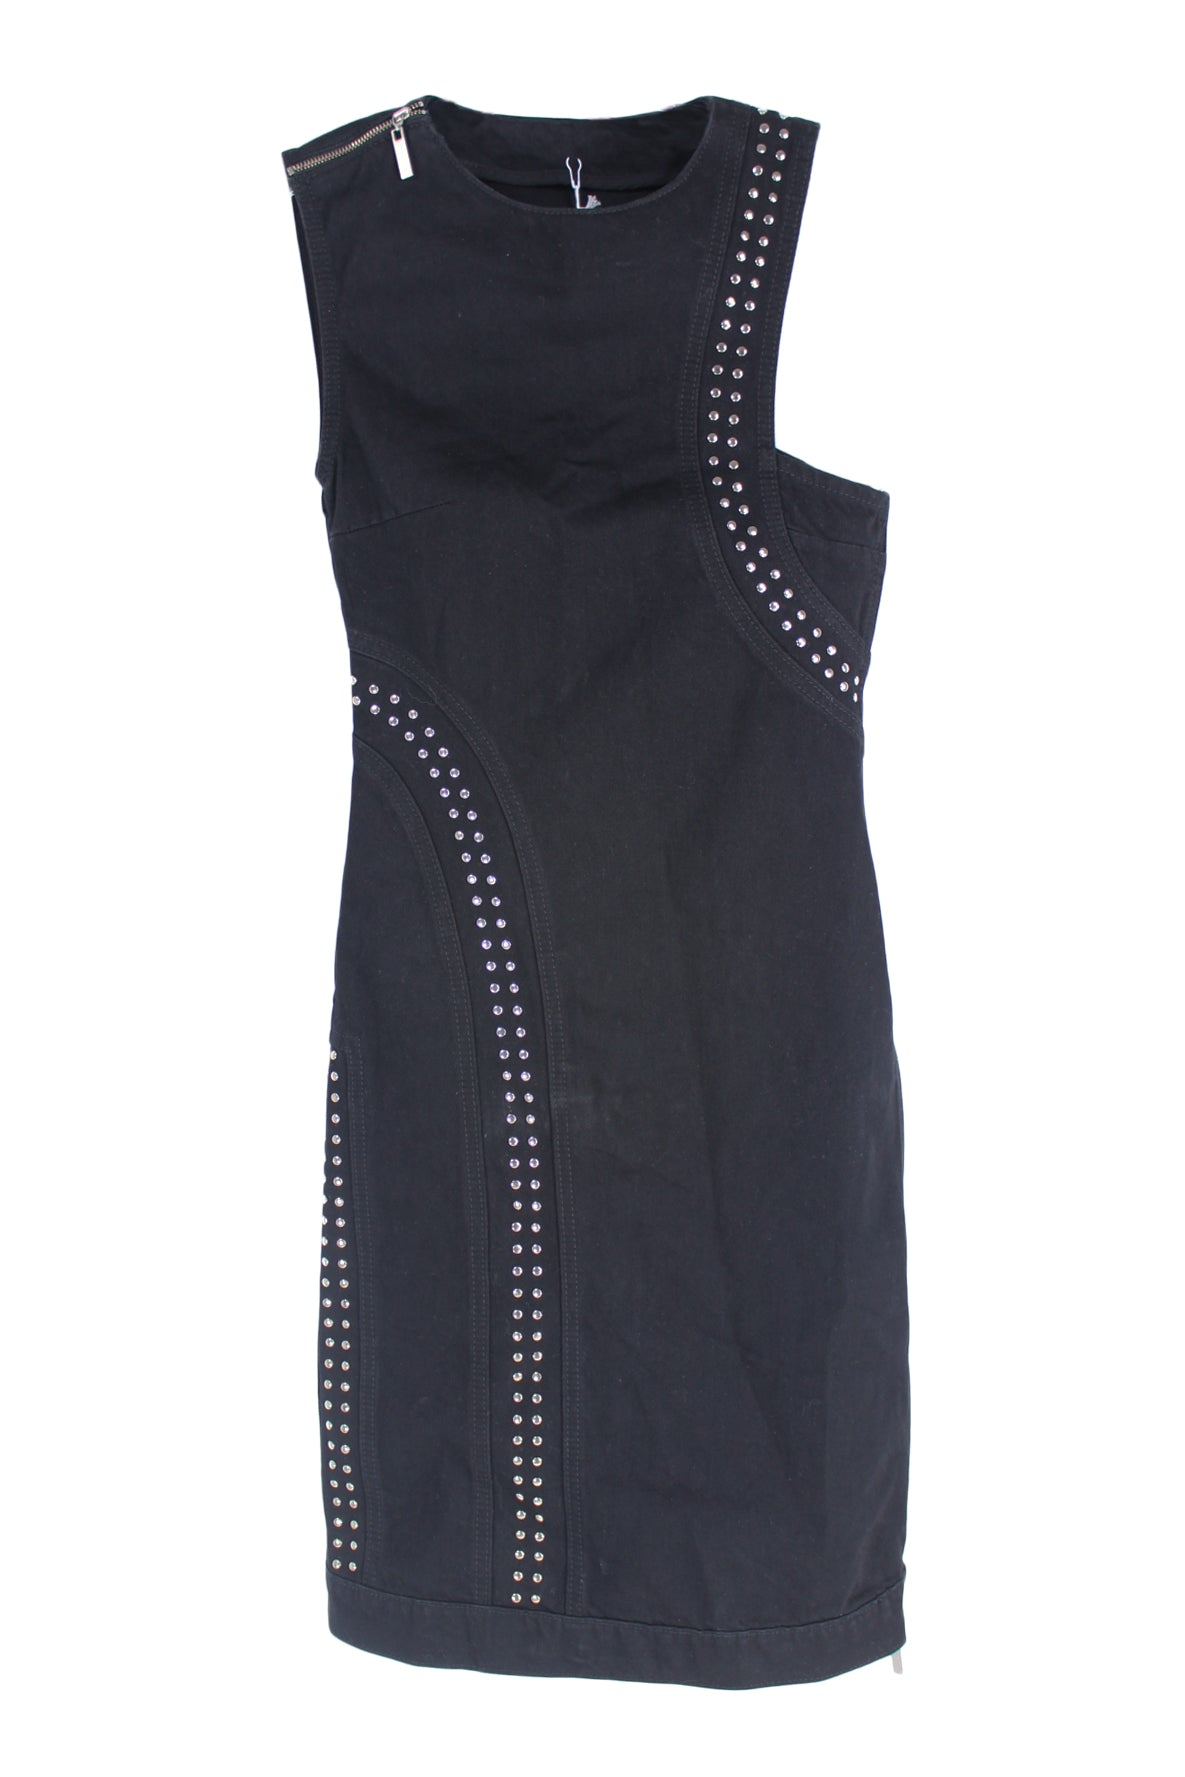 saks potts black denim sleeveless dress with asymmetrical chest & back cut out & studded curved line designs. featuring silver hardware,  paneled composition,  mid back slit, double side zip closure & shoulder strap zipper detail with branded zipper pulls. composed of a non stretch material.